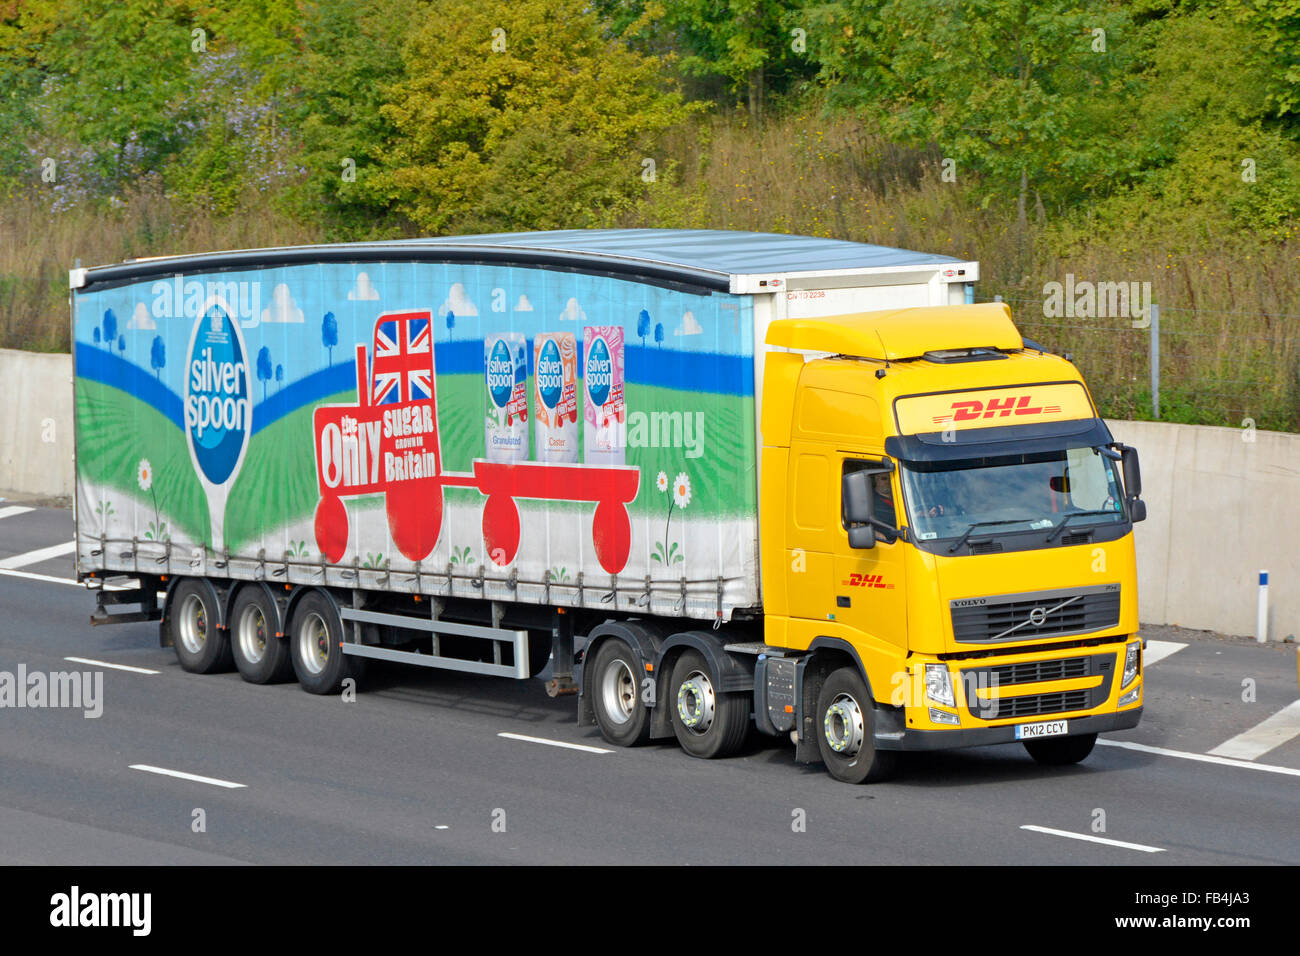 DHL Volvo lorry truck & soft sided articulated curtain trailer advertising Associated British Foods 'Silver - Stock Image